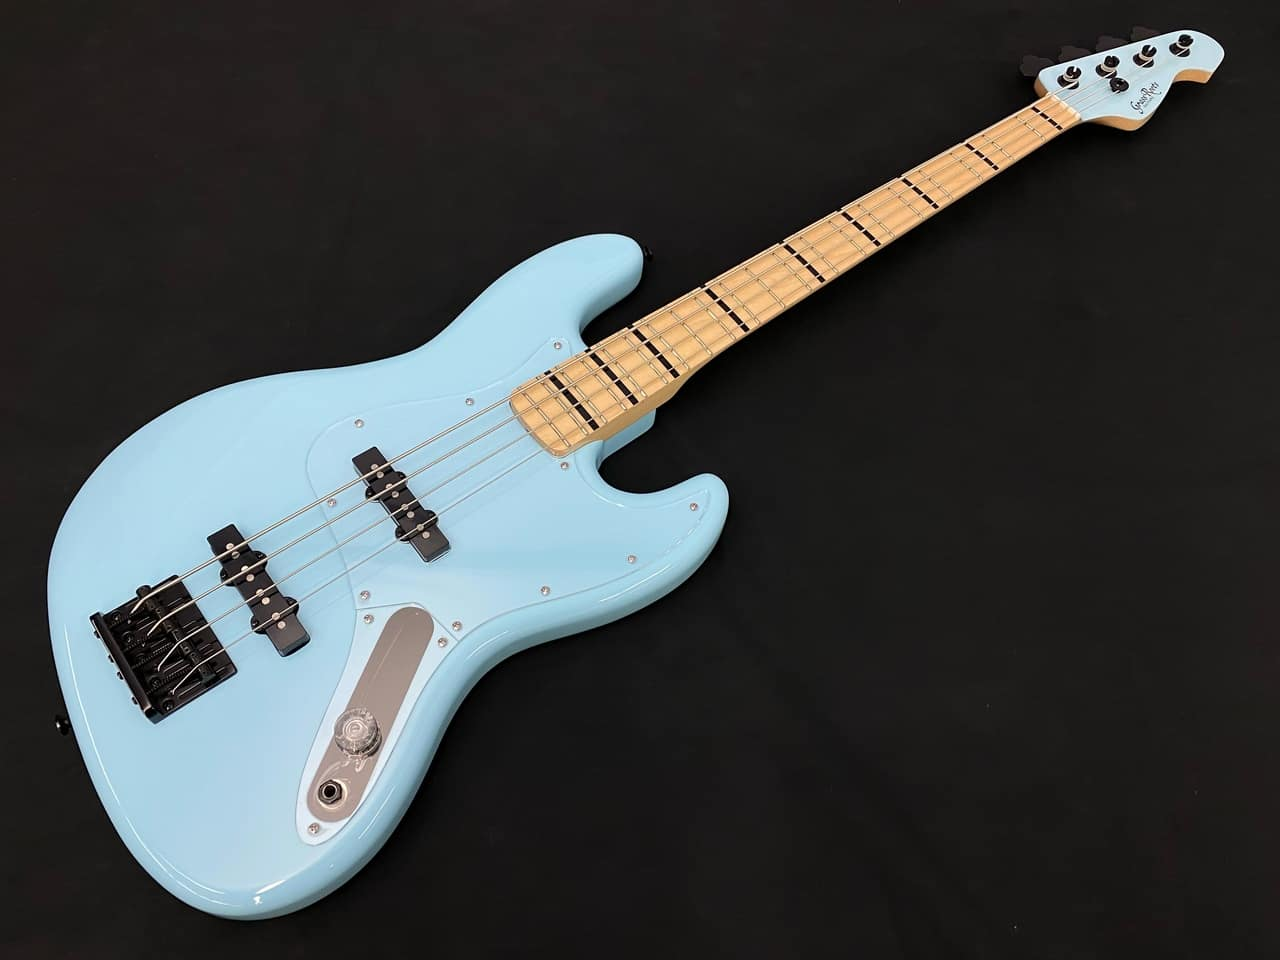 【即納可能/中古品】GrassRoots(グラスルーツ) G-EAST BLUE (04 Limited Sazabys/GEN Model) 駅前店